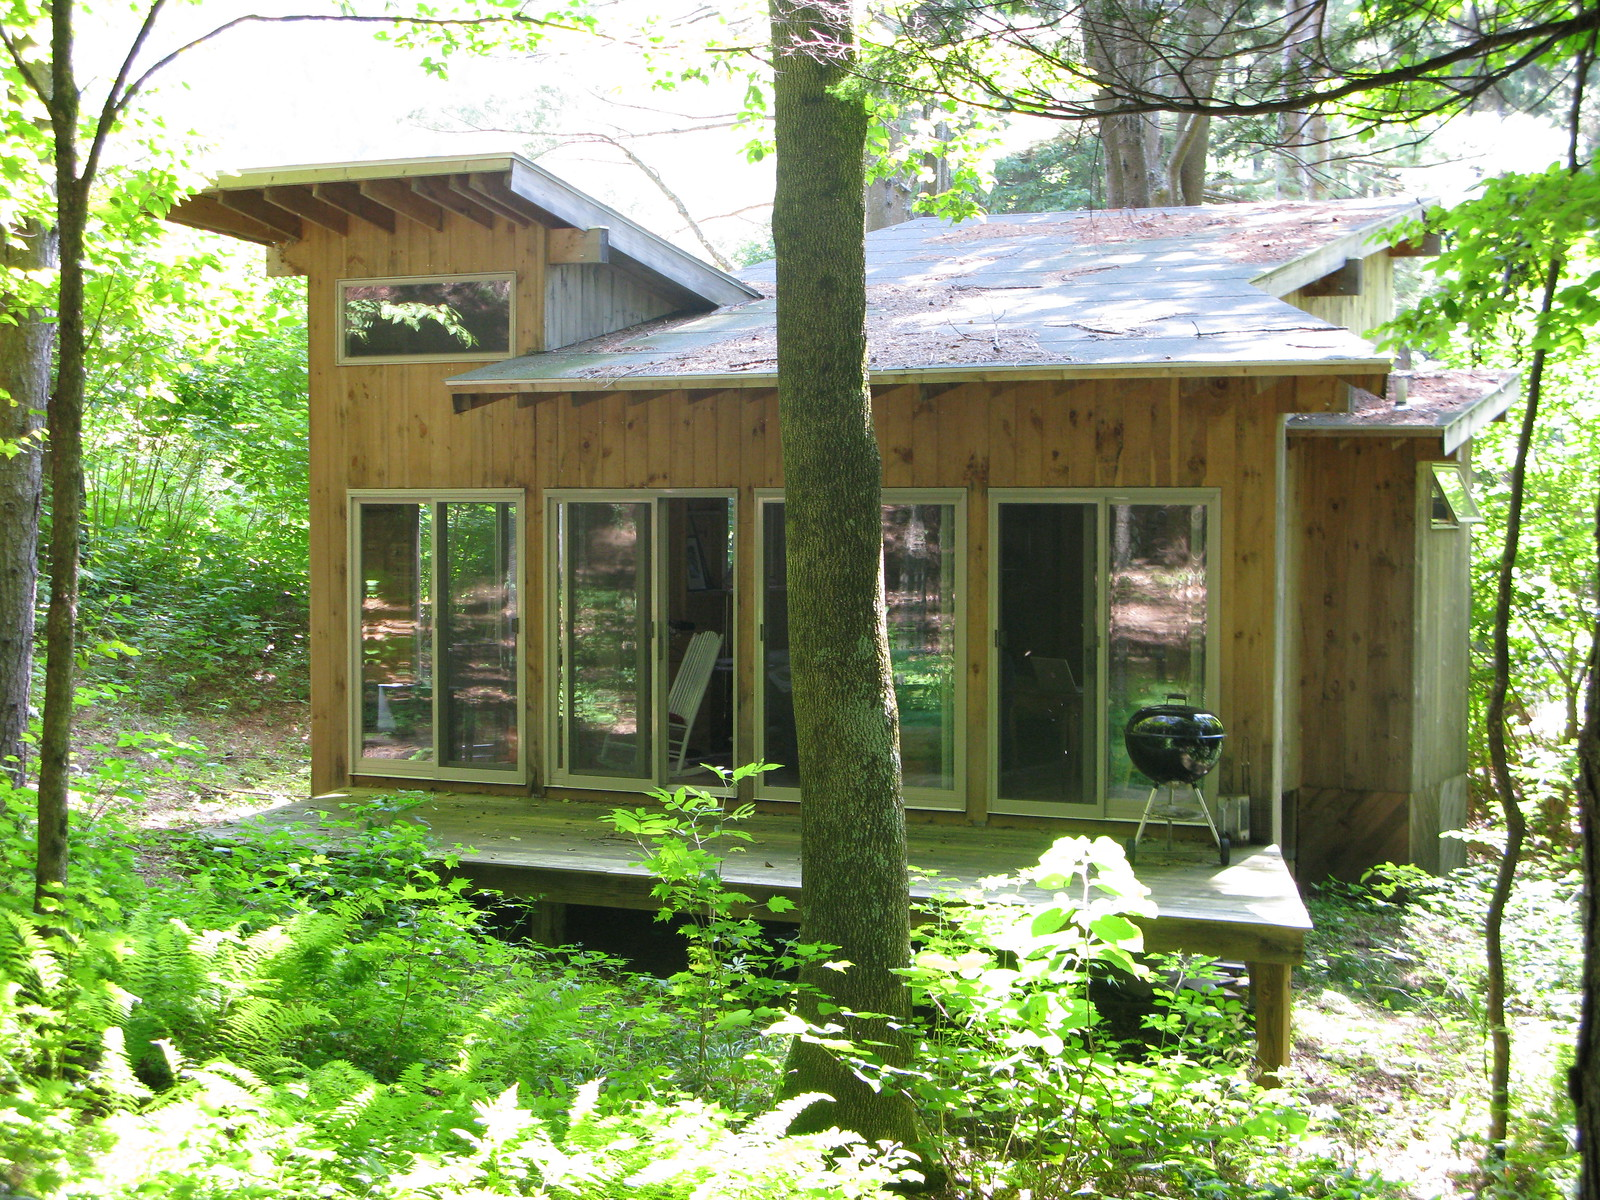 Permanent construction is used in the construction of treehouses, cottages, and cabins